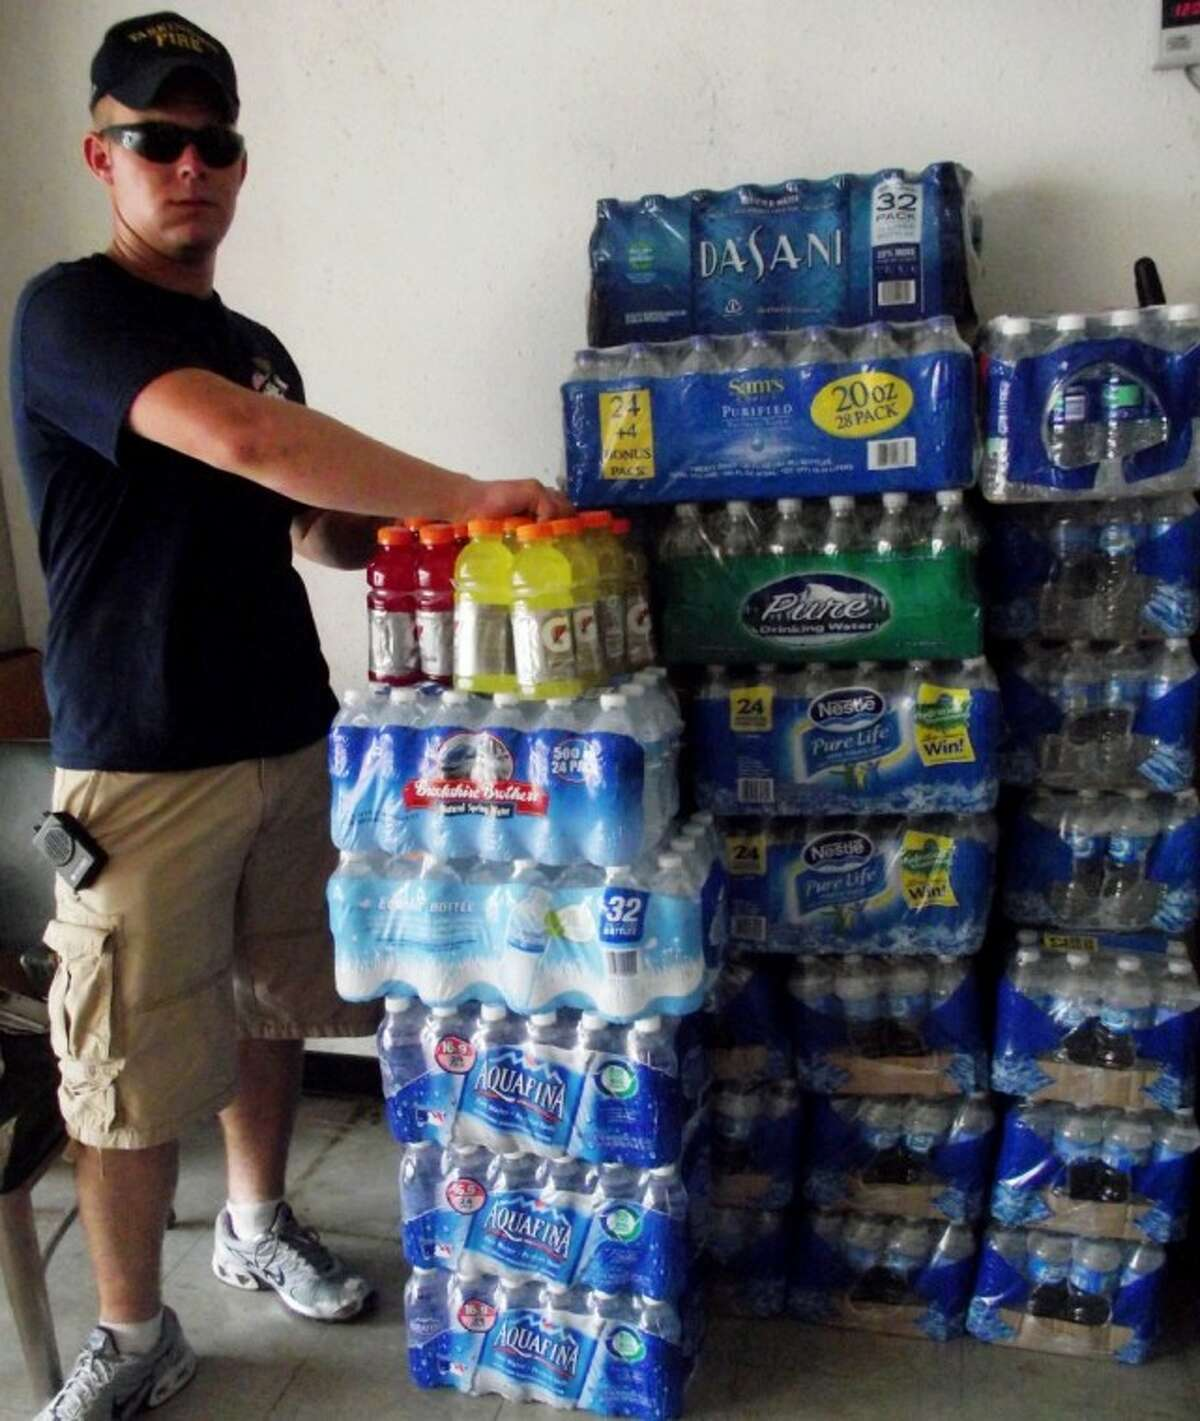 Tarkington VFD Captain Ben Burnett adds to the stacks of water and Gatorade donated to the fire station on Saturday. Liberty County fire departments held a county-wide water/Gatorade drive on July 9 to help offset costs of keeping firefighters hydrated at fire scenes.